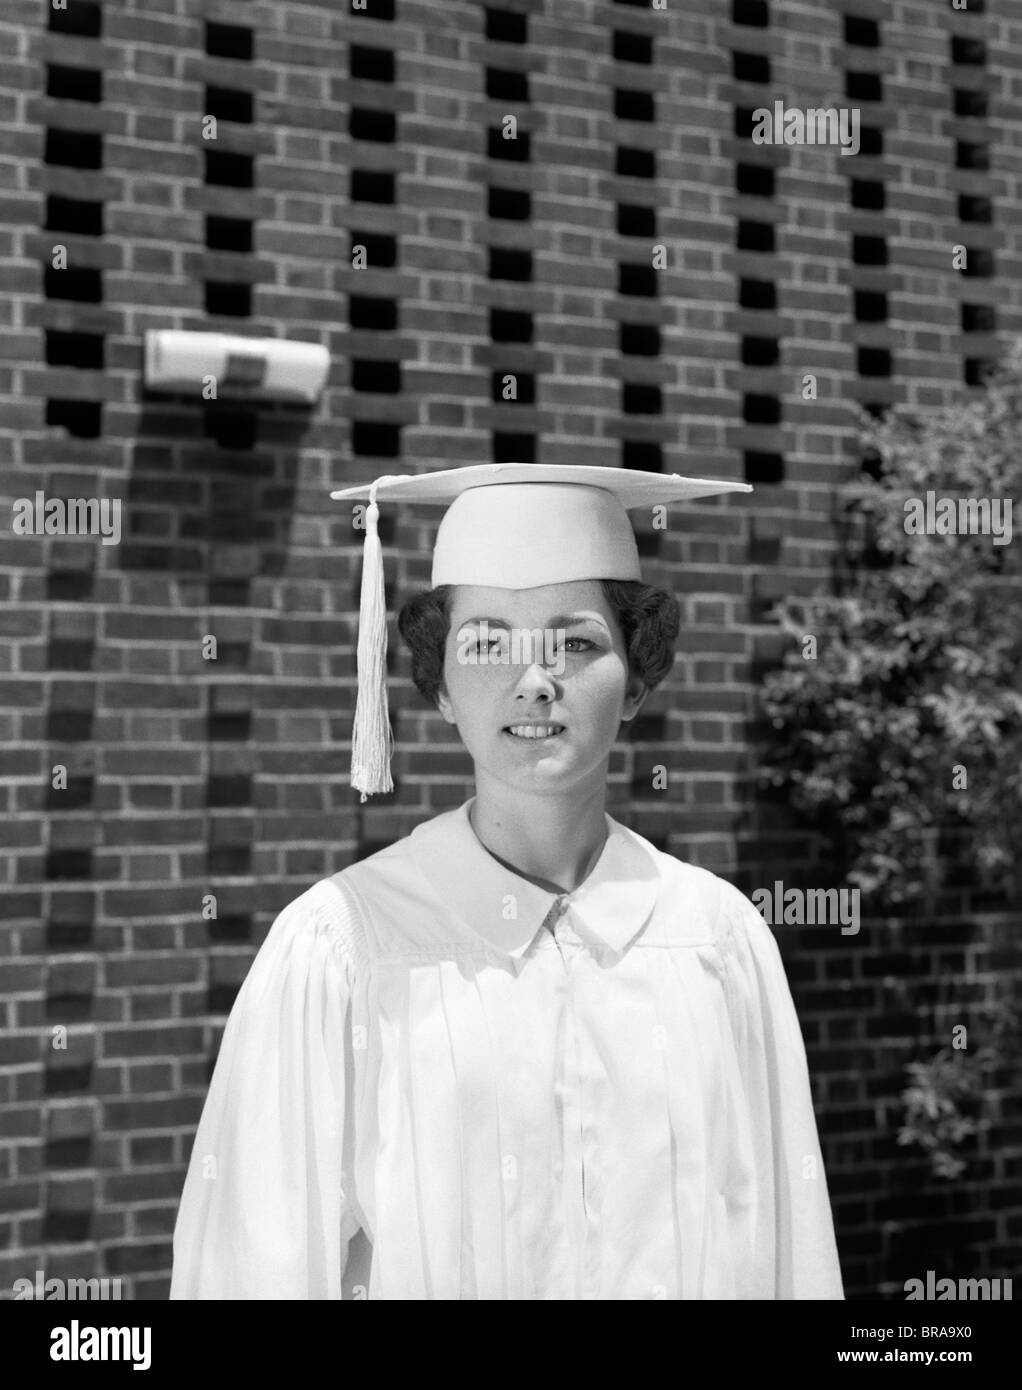 Black dress under white graduation gown - 1960s Portrait Teen Girl White Cap And Gown Graduation Robe Stock Image